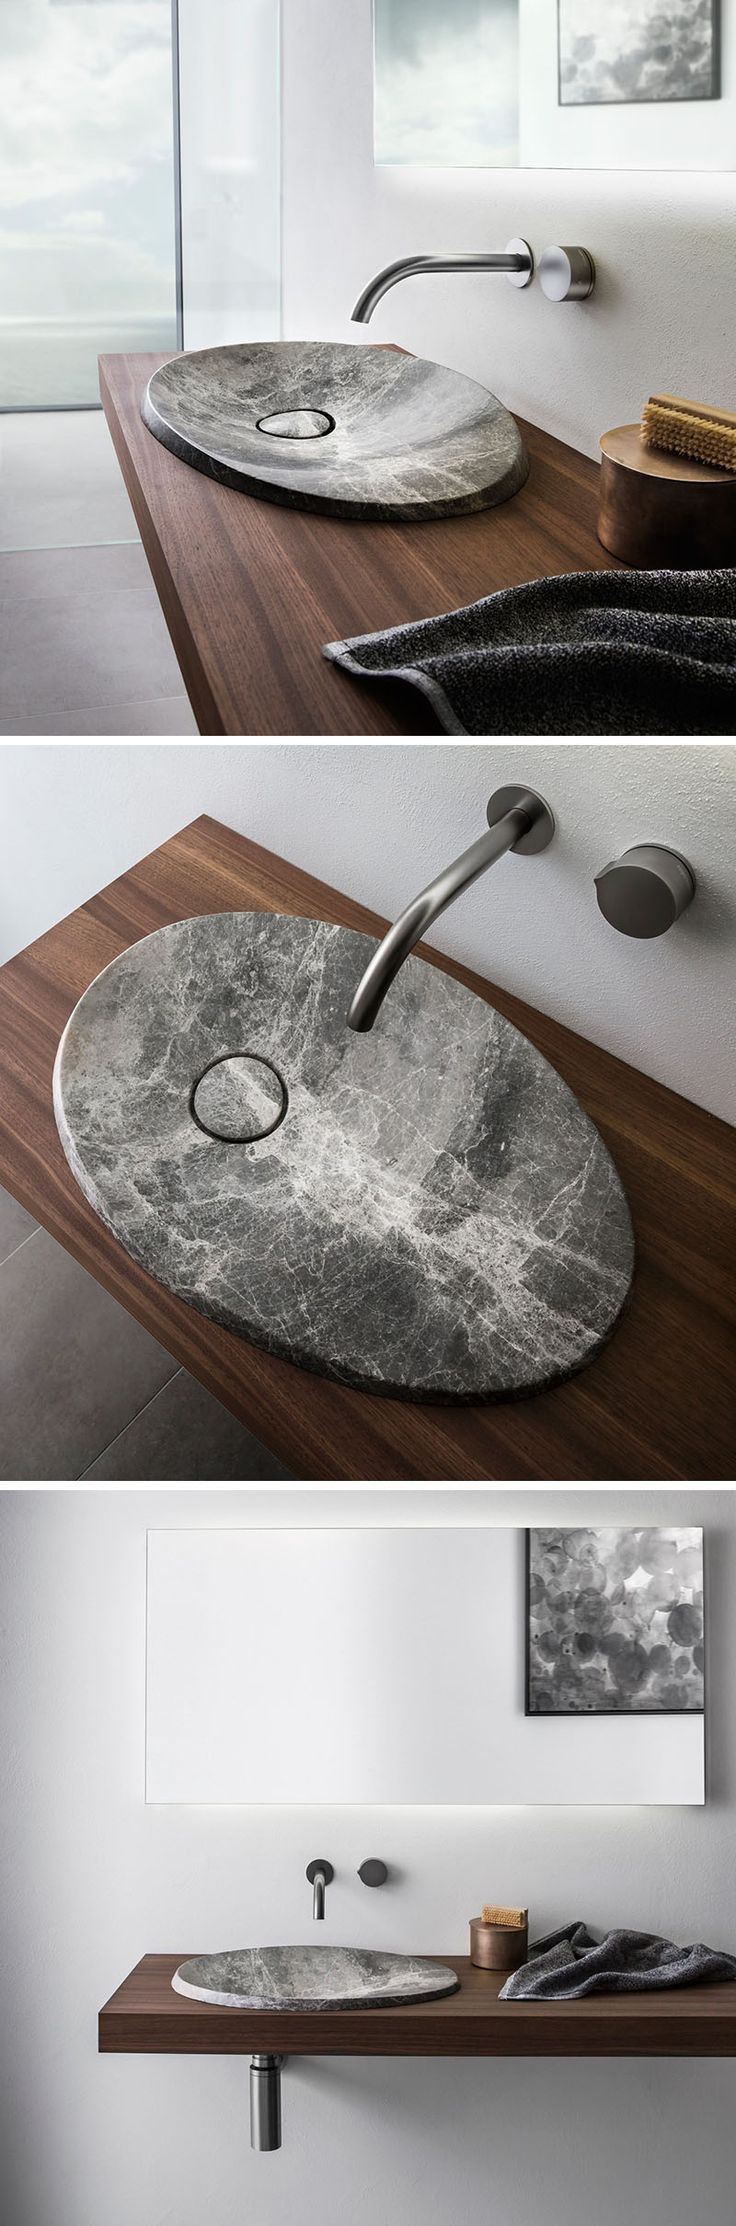 Bathroom Sinks Modern best 25+ stone sink ideas on pinterest | bathroom sink bowls